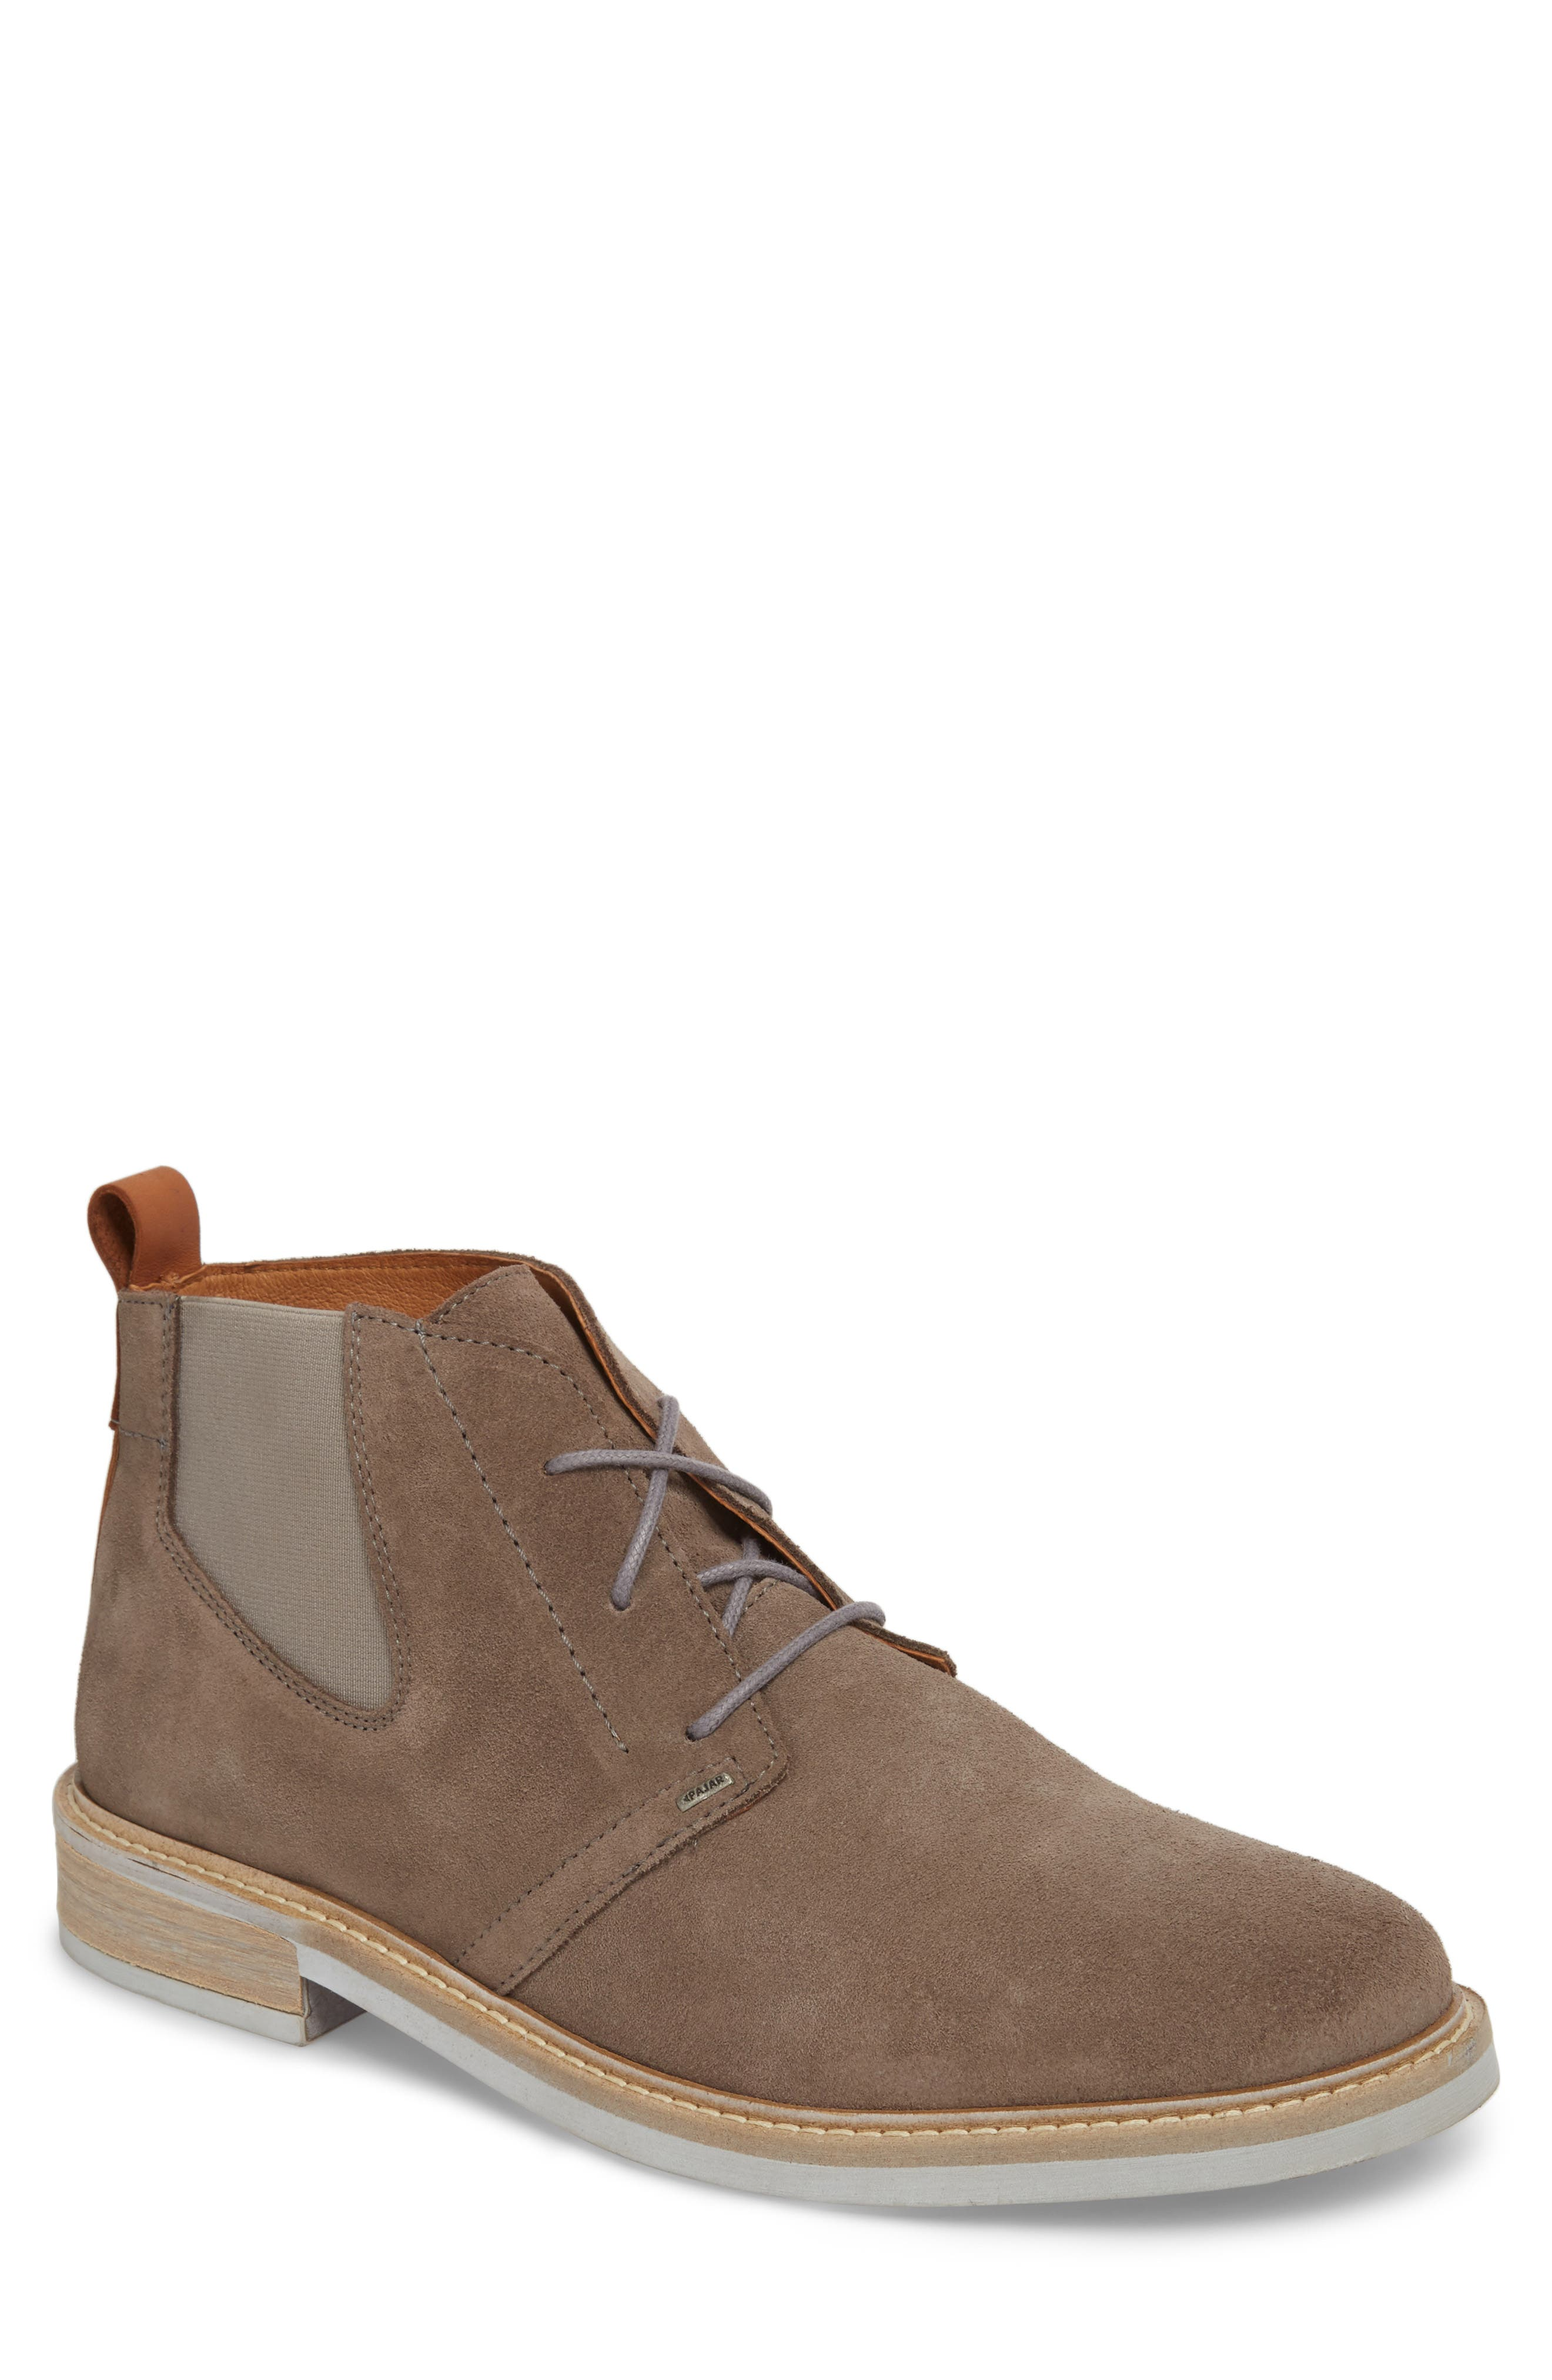 Jameson Water Resistant Chukka Boot,                         Main,                         color, ANTHRACITE